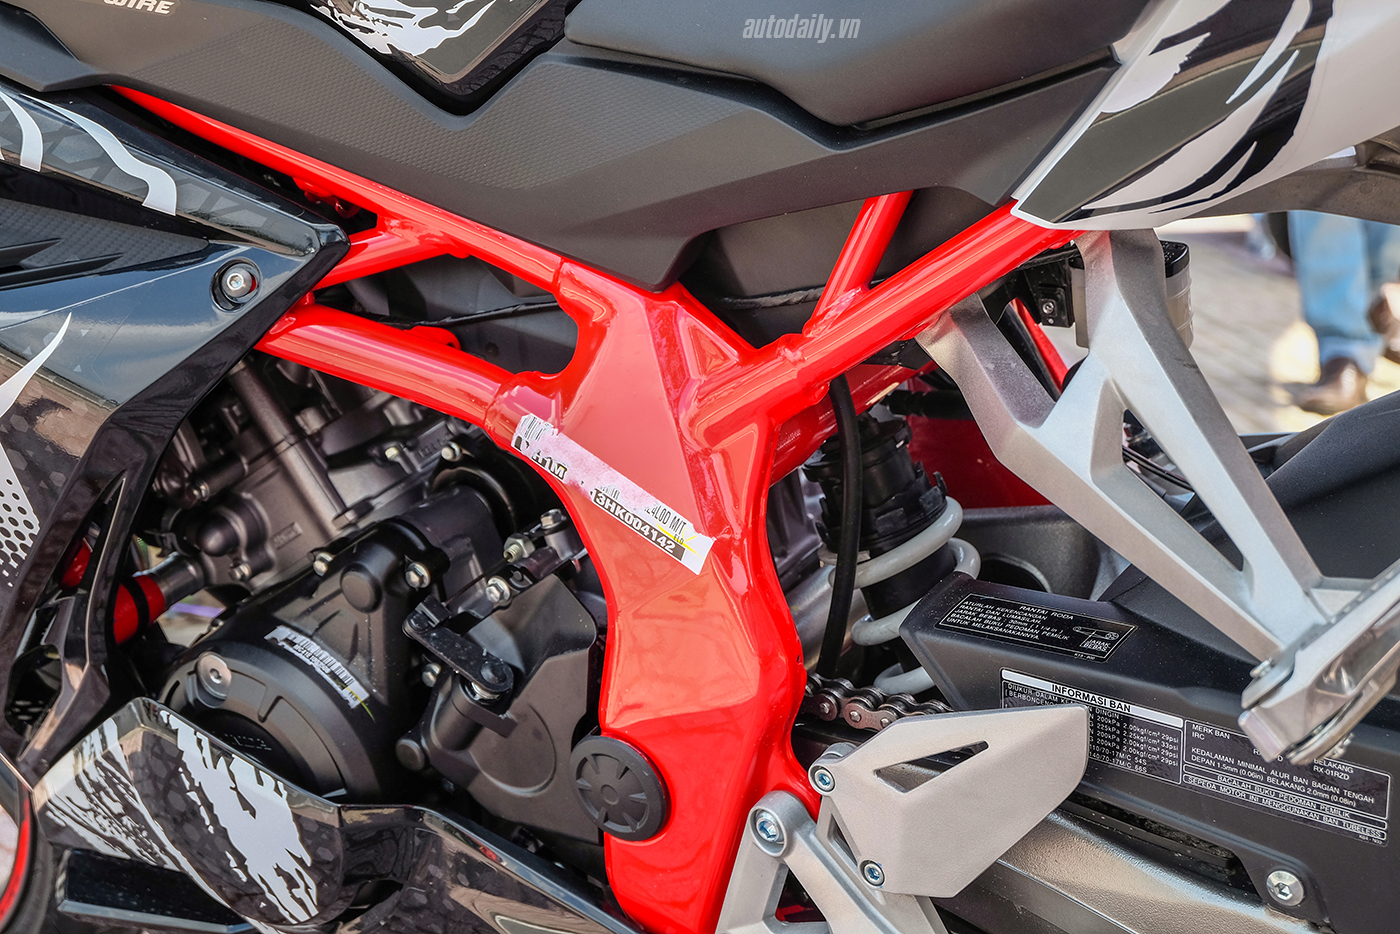 honda-cbr250rr-the-art-of-kabuki-2017-4.jpg